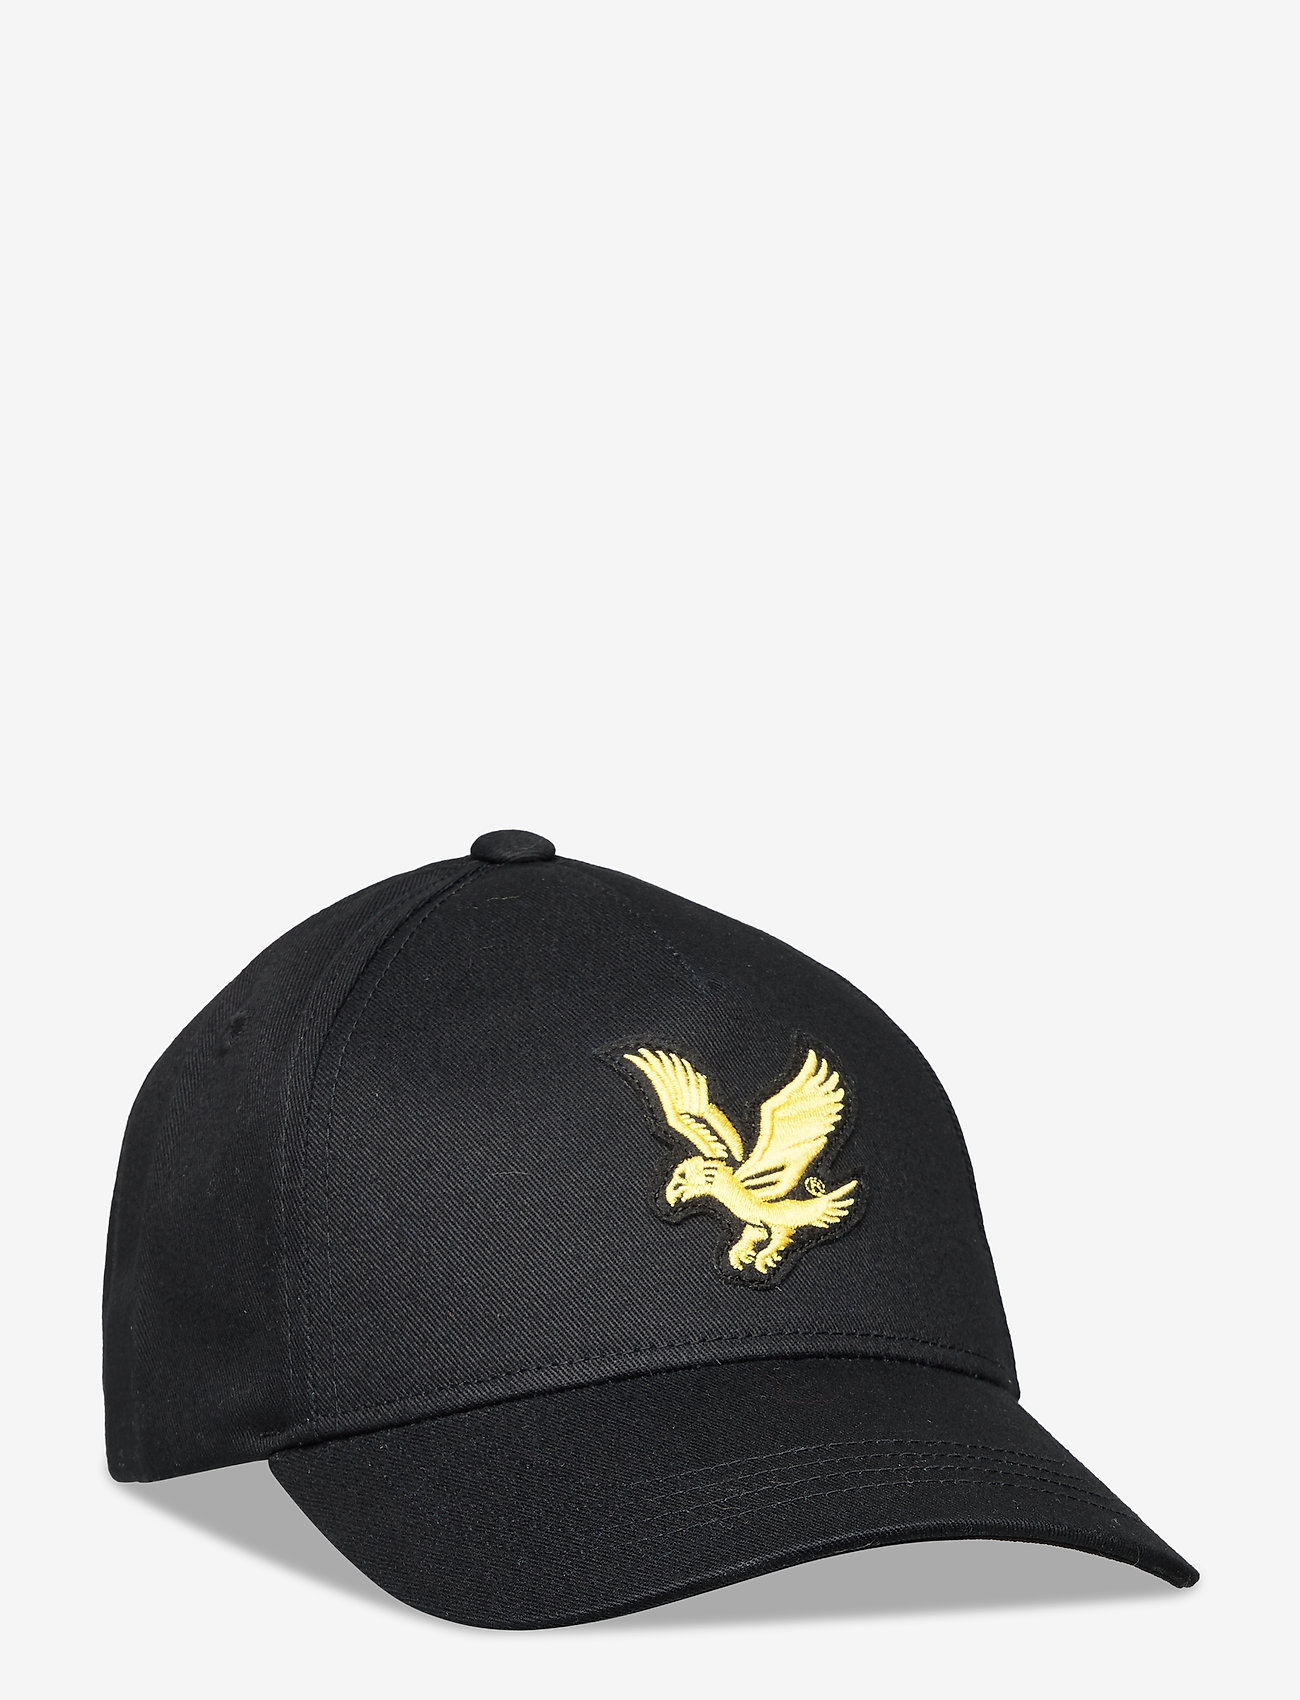 Lyle & Scott Junior - Eagle Cap Black - caps - black - 0